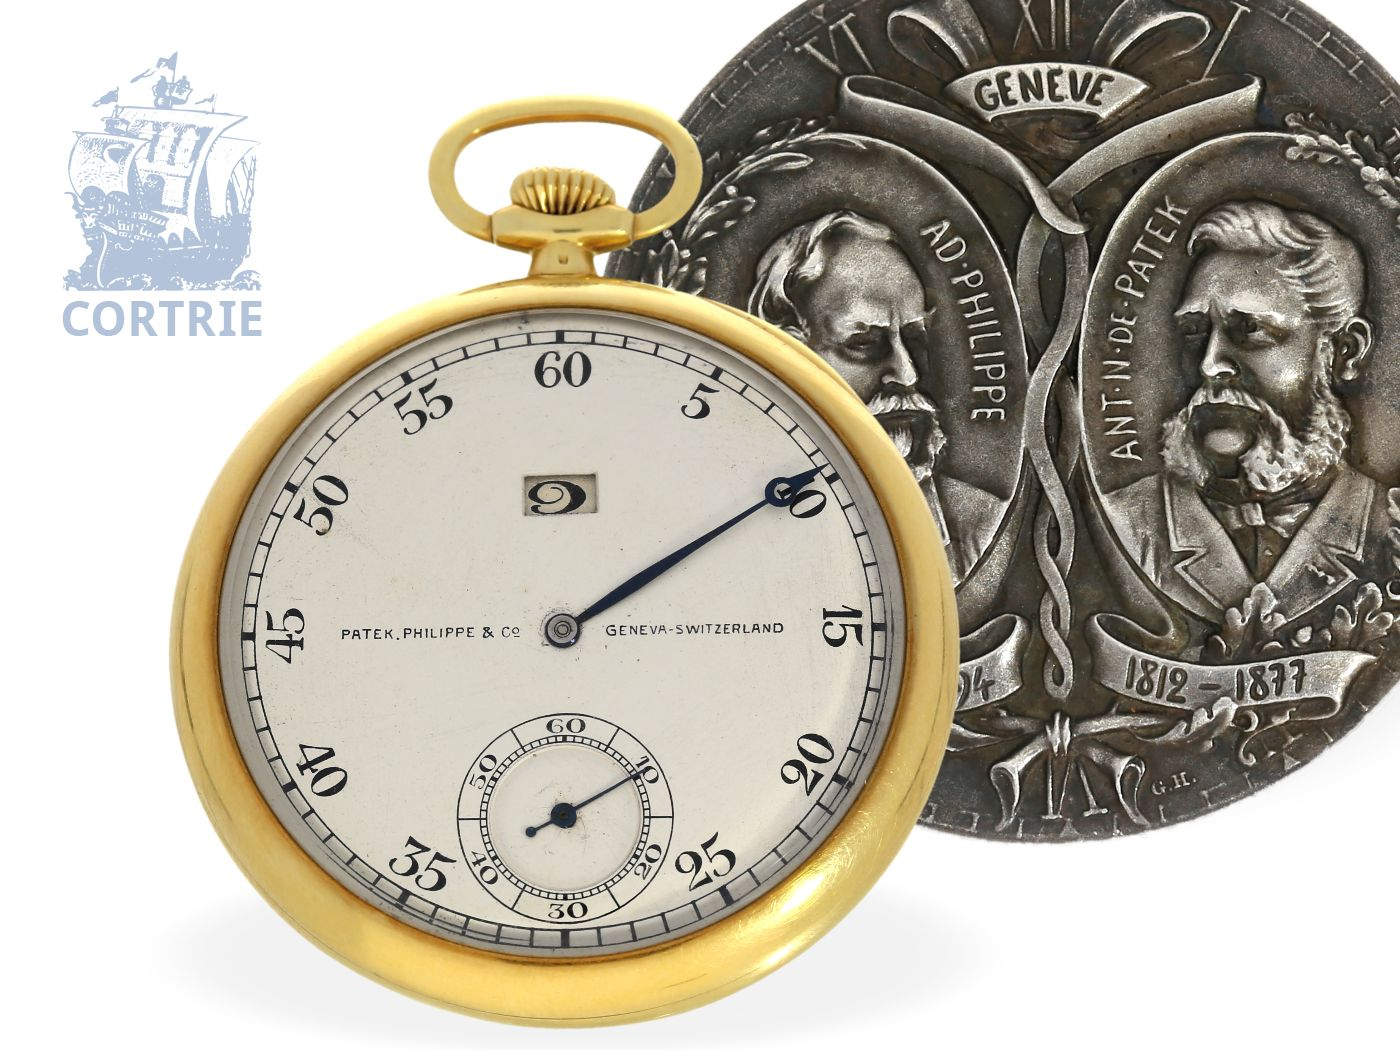 Pocket watch: Patek Philippe rarity, pocket watch with jumping hours, less than 10 pieces noted-